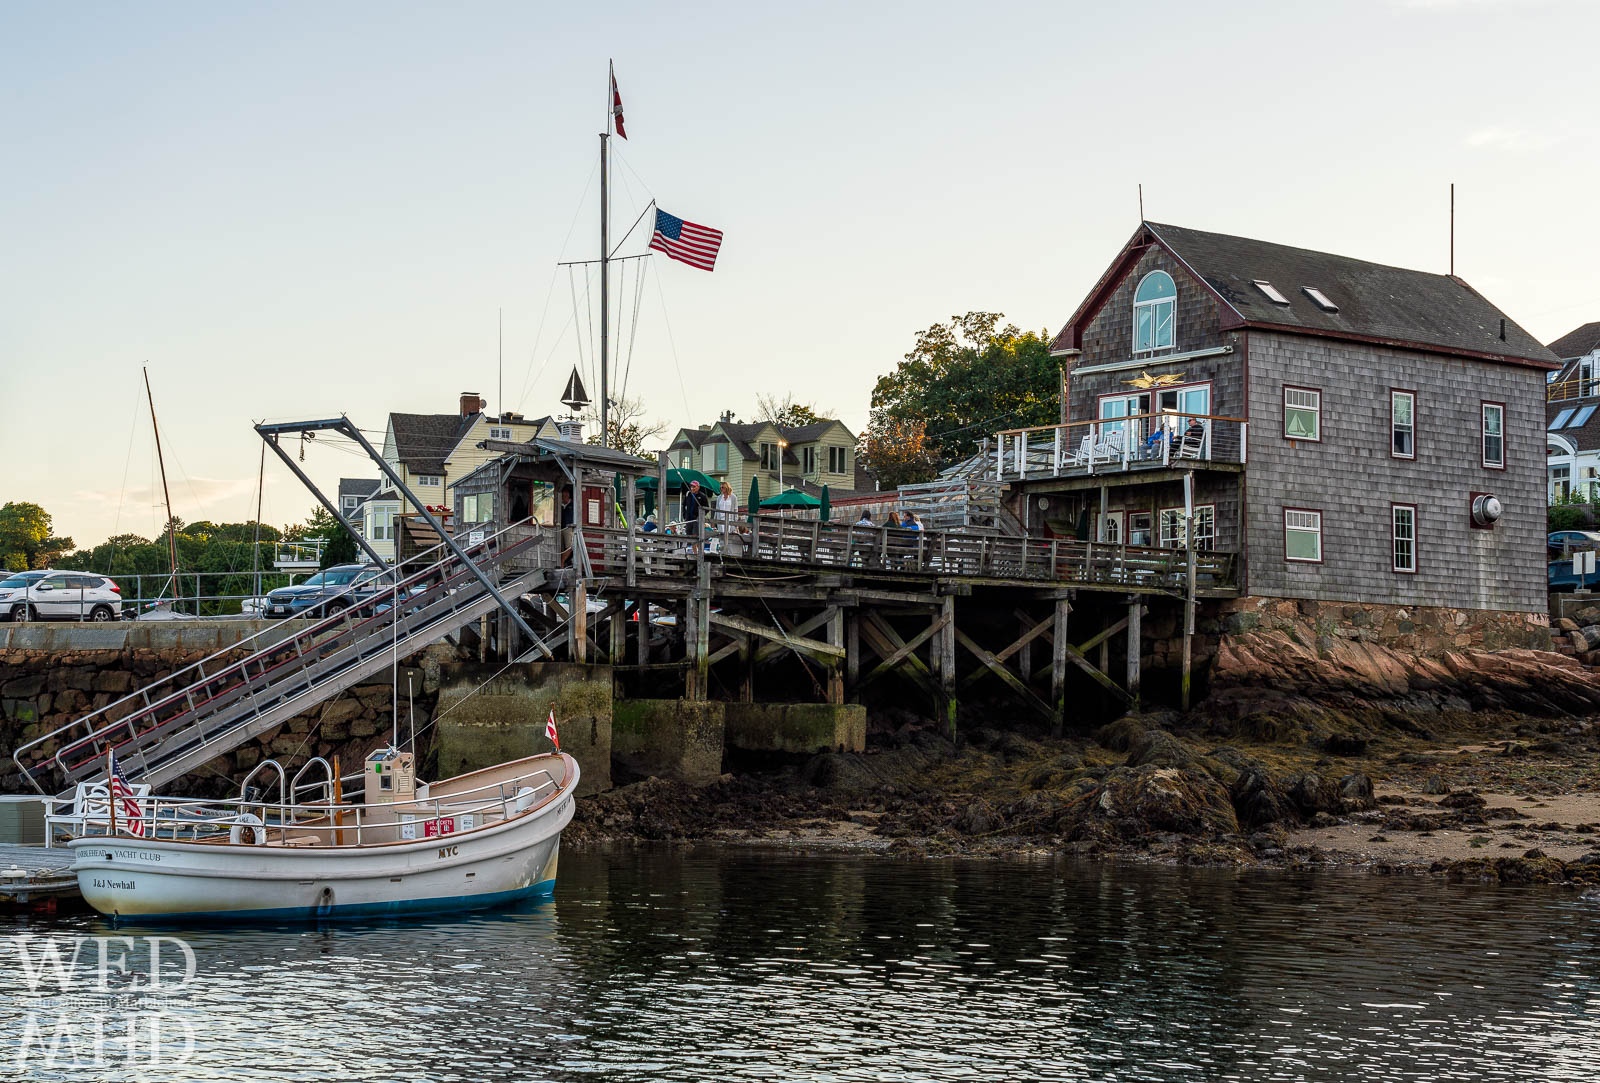 Patrons enjoy dinner at the Marblehead Yacht Club during the Labor Day weekend in Marblehead